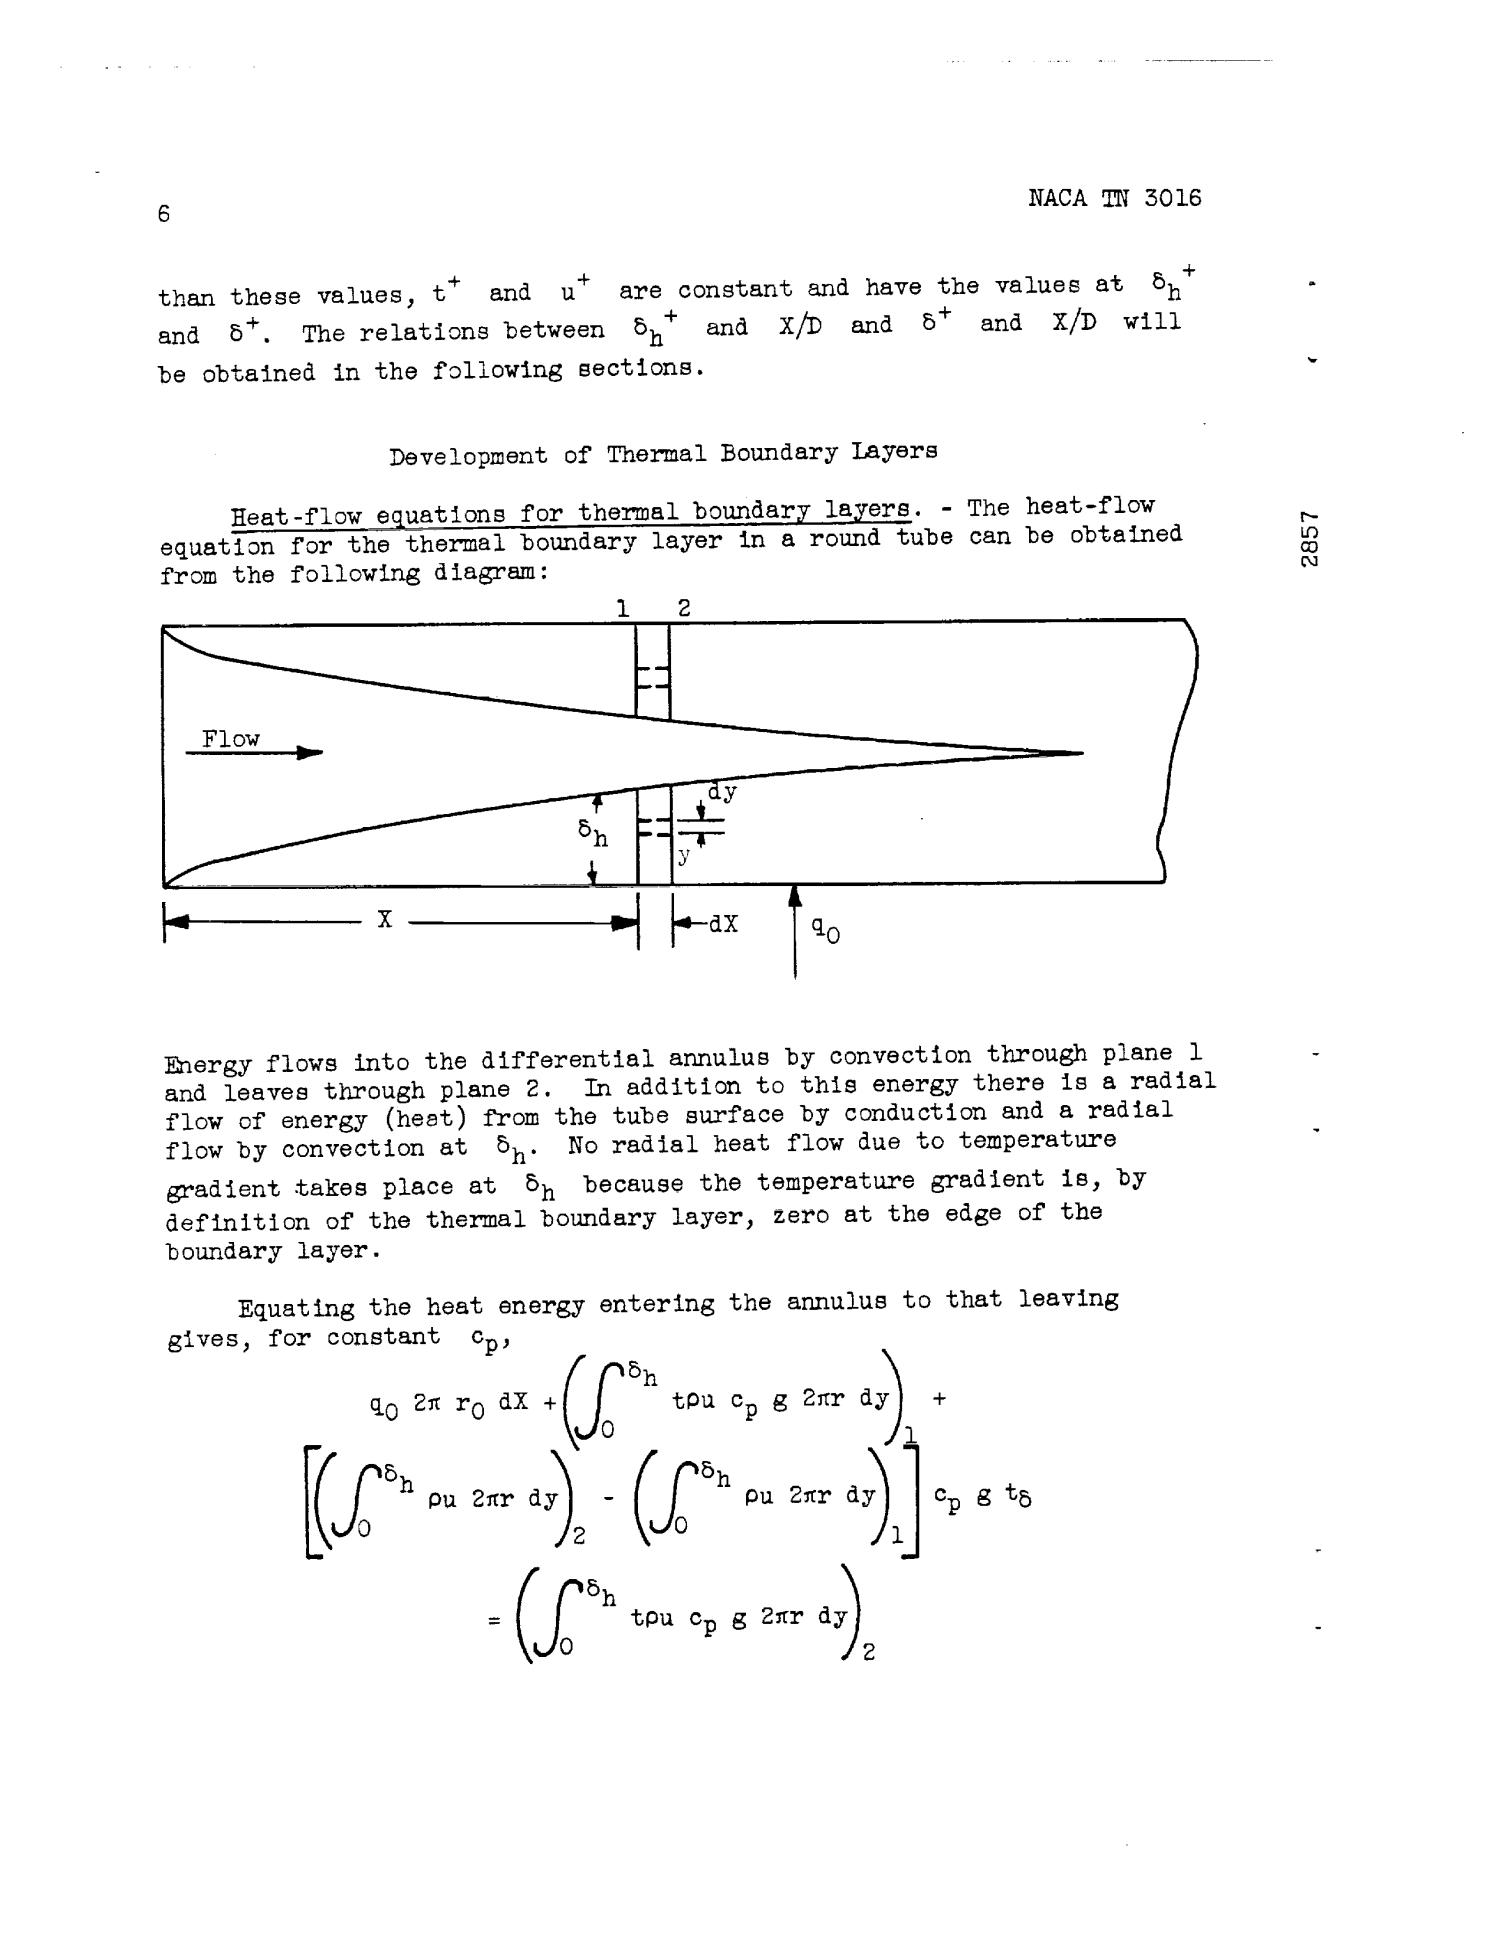 Analysis of turbulent heat transfer and flow in the entrance regions analysis of turbulent heat transfer and flow in the entrance regions of smooth passages page 8 of 90 digital library ccuart Gallery